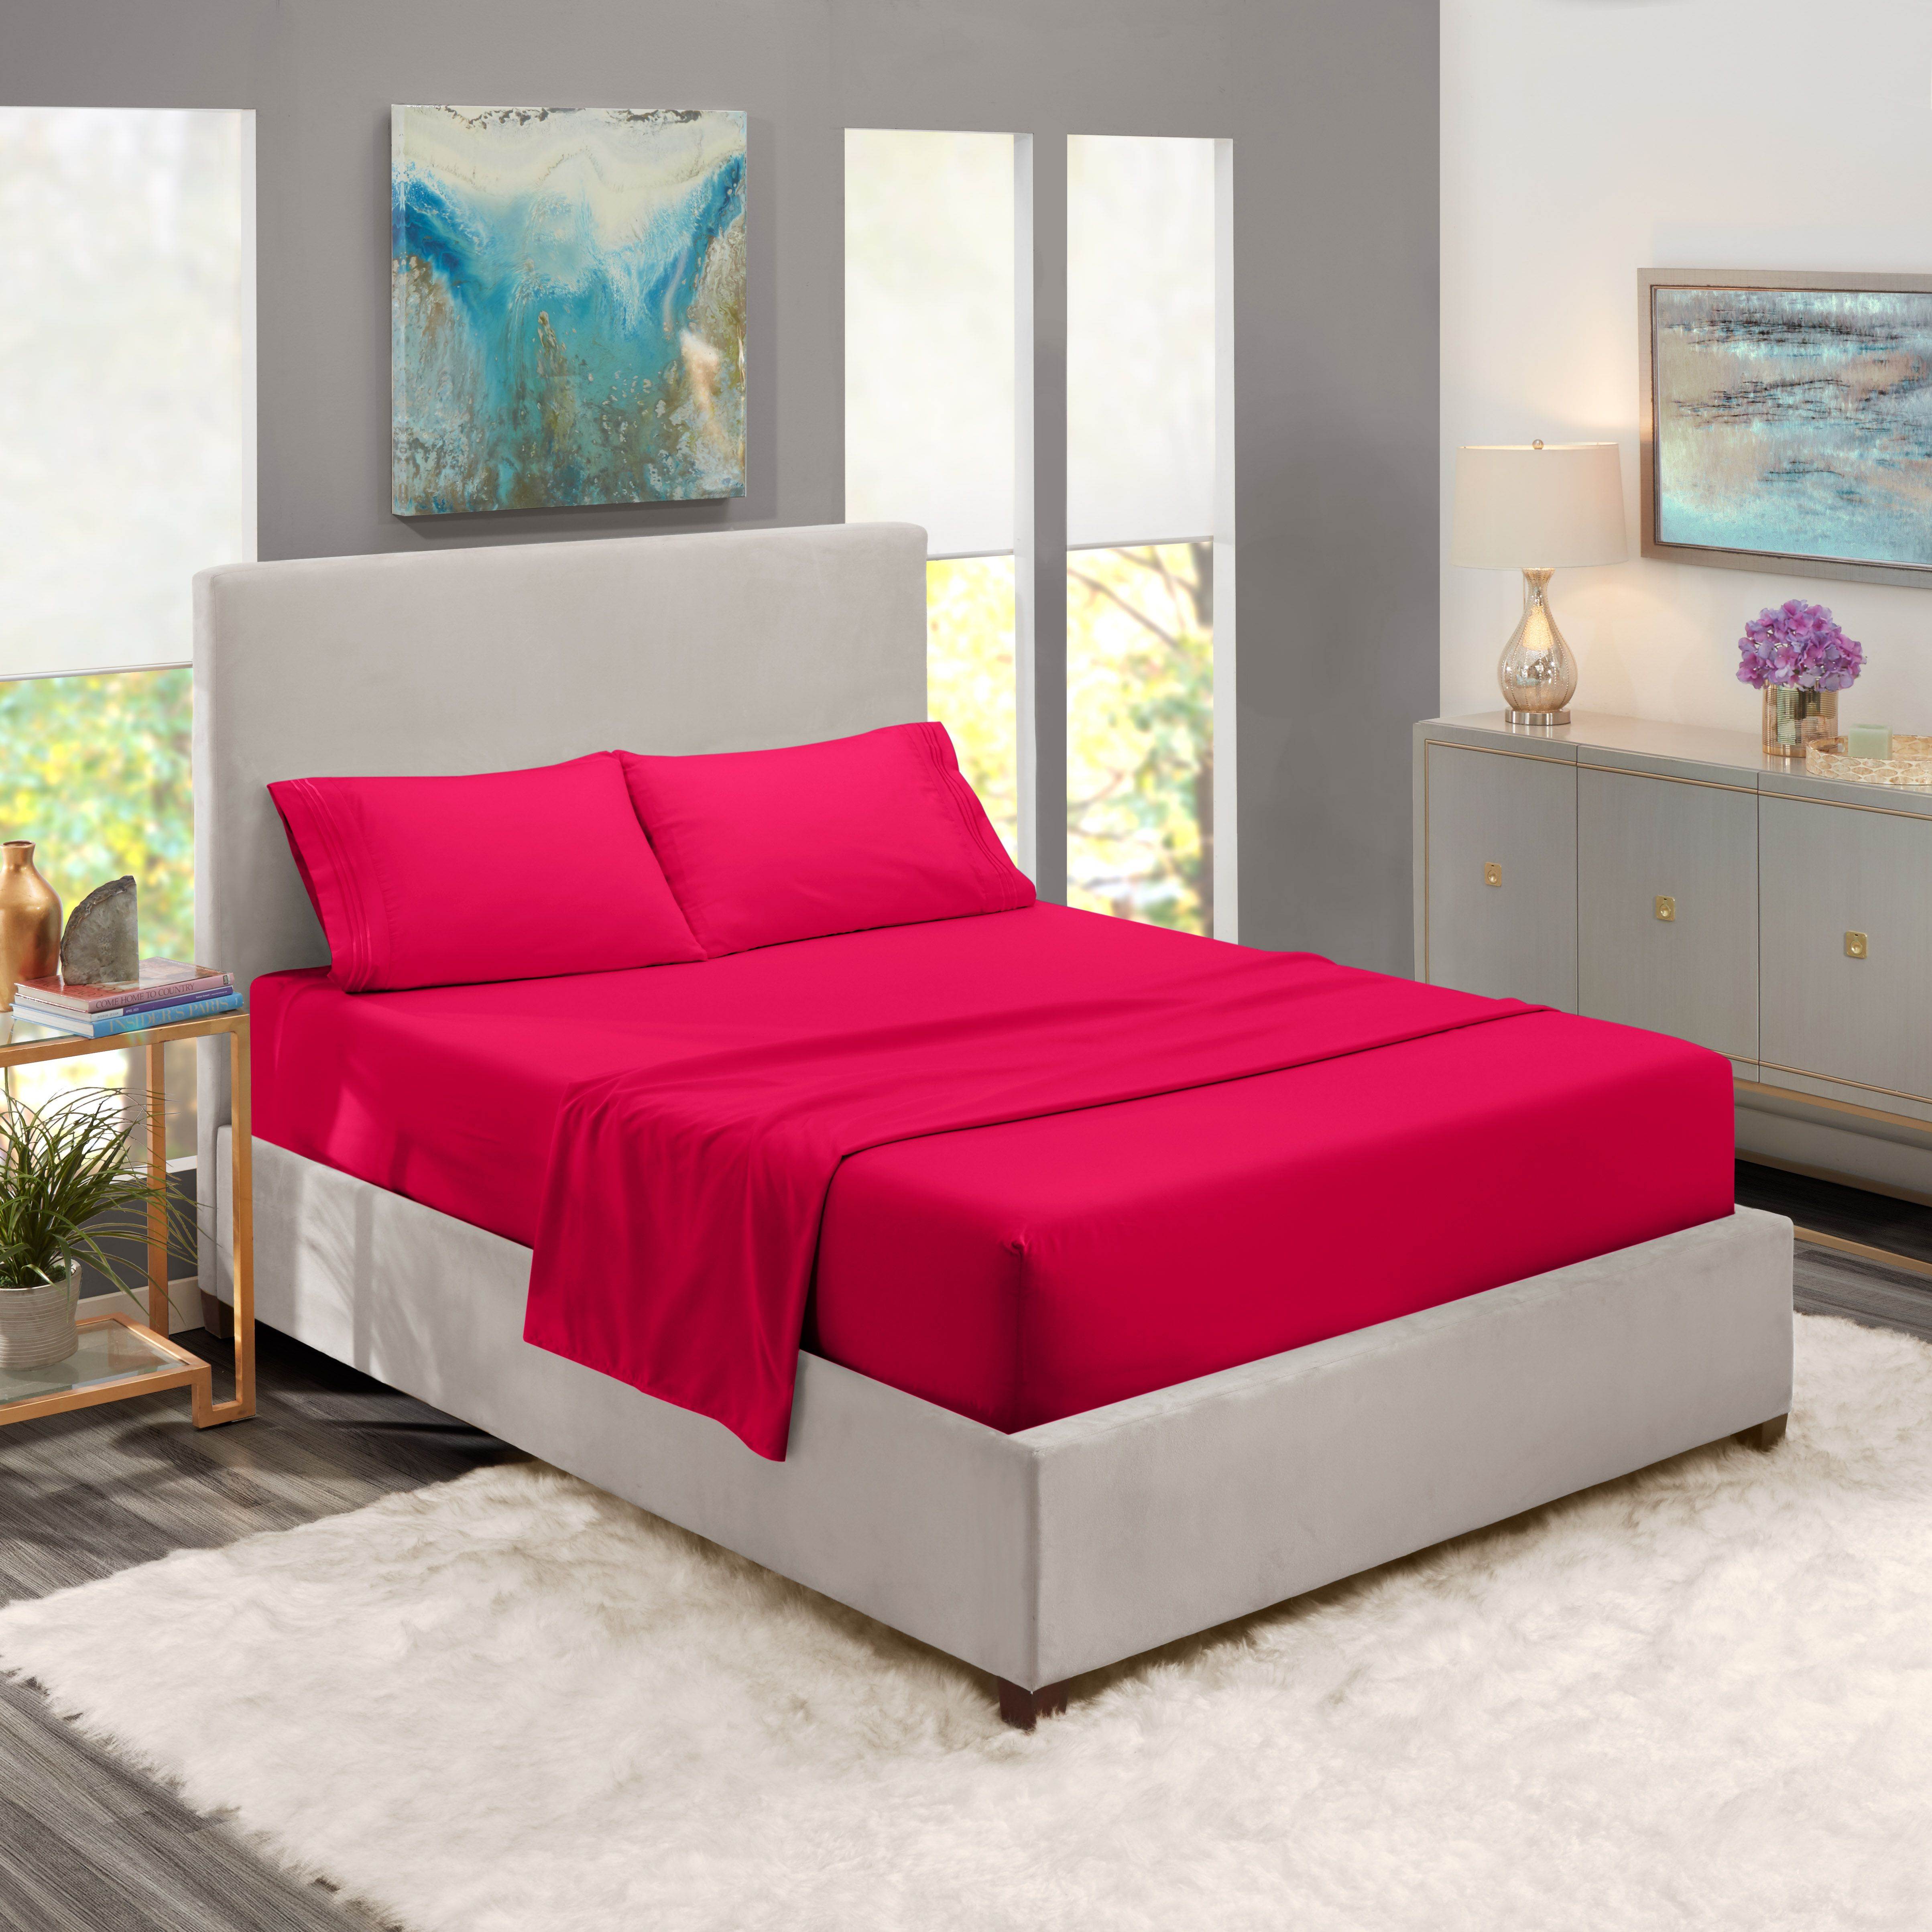 Full xl size bed sheets set hot pink luxury bedding